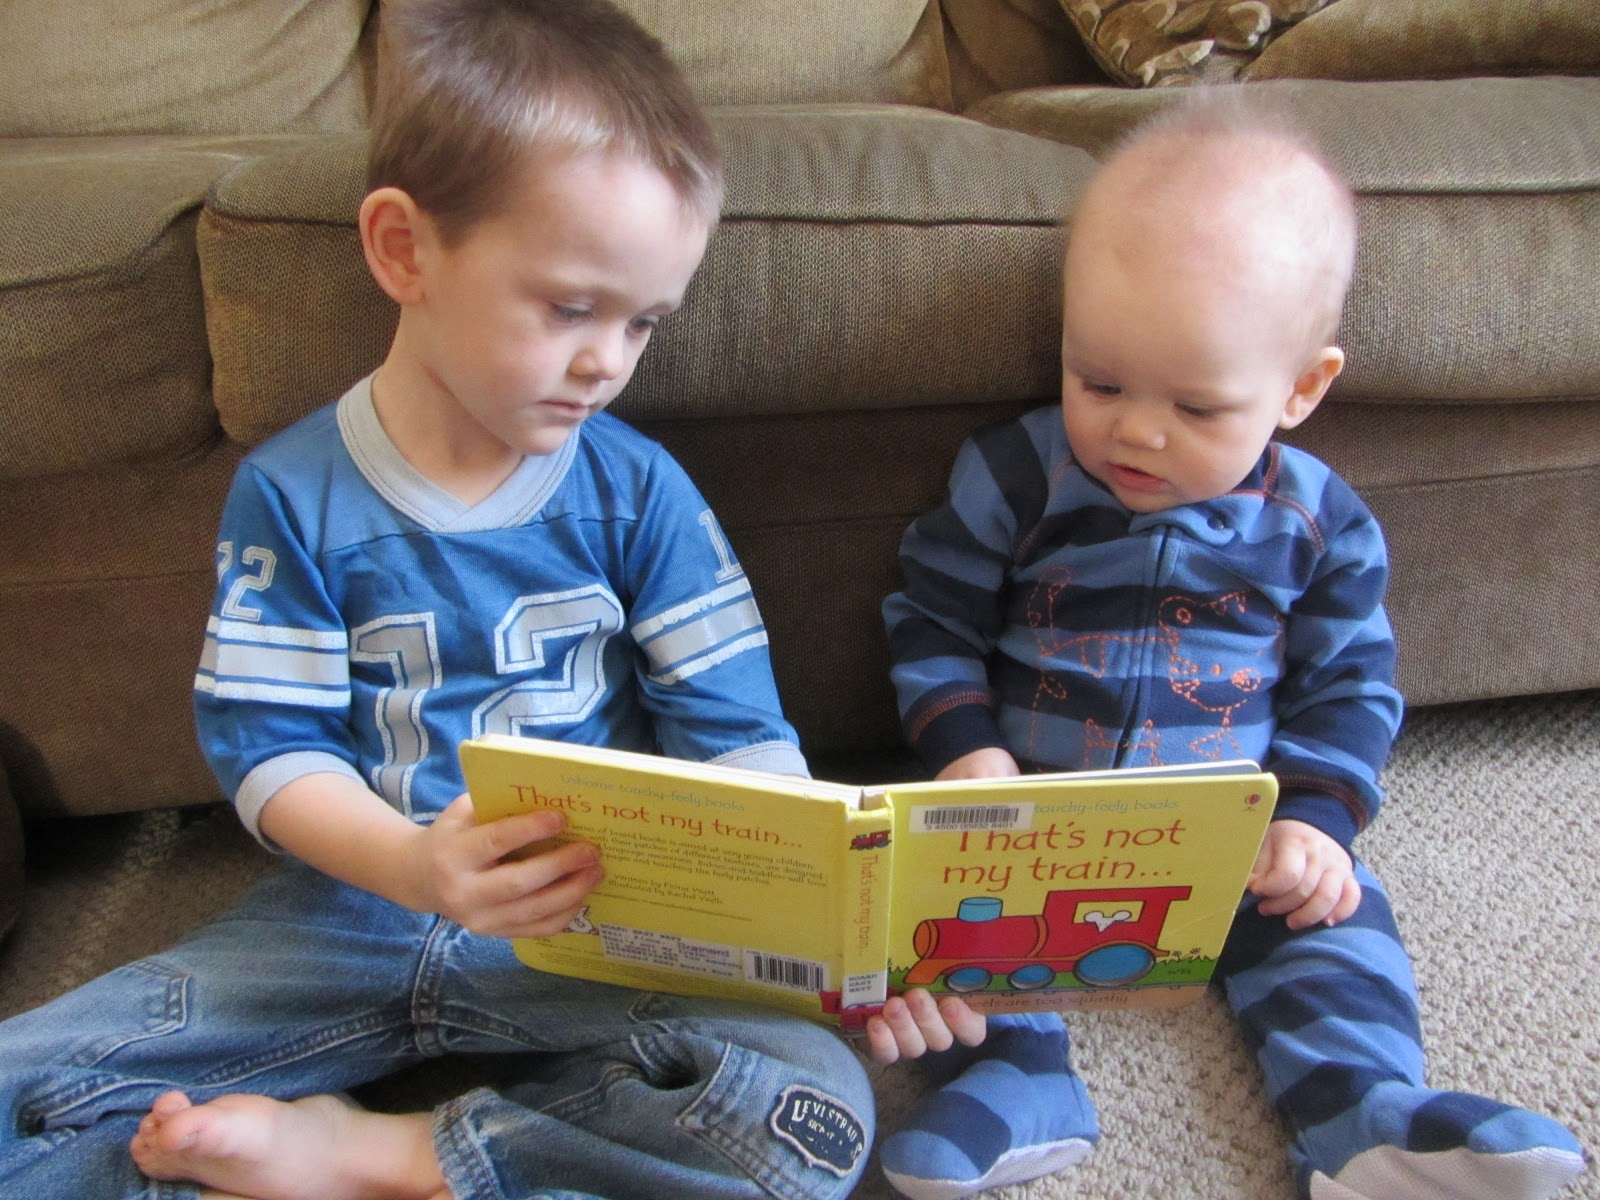 How to Homeschool With Infants, Toddlers, or Preschoolers recommend